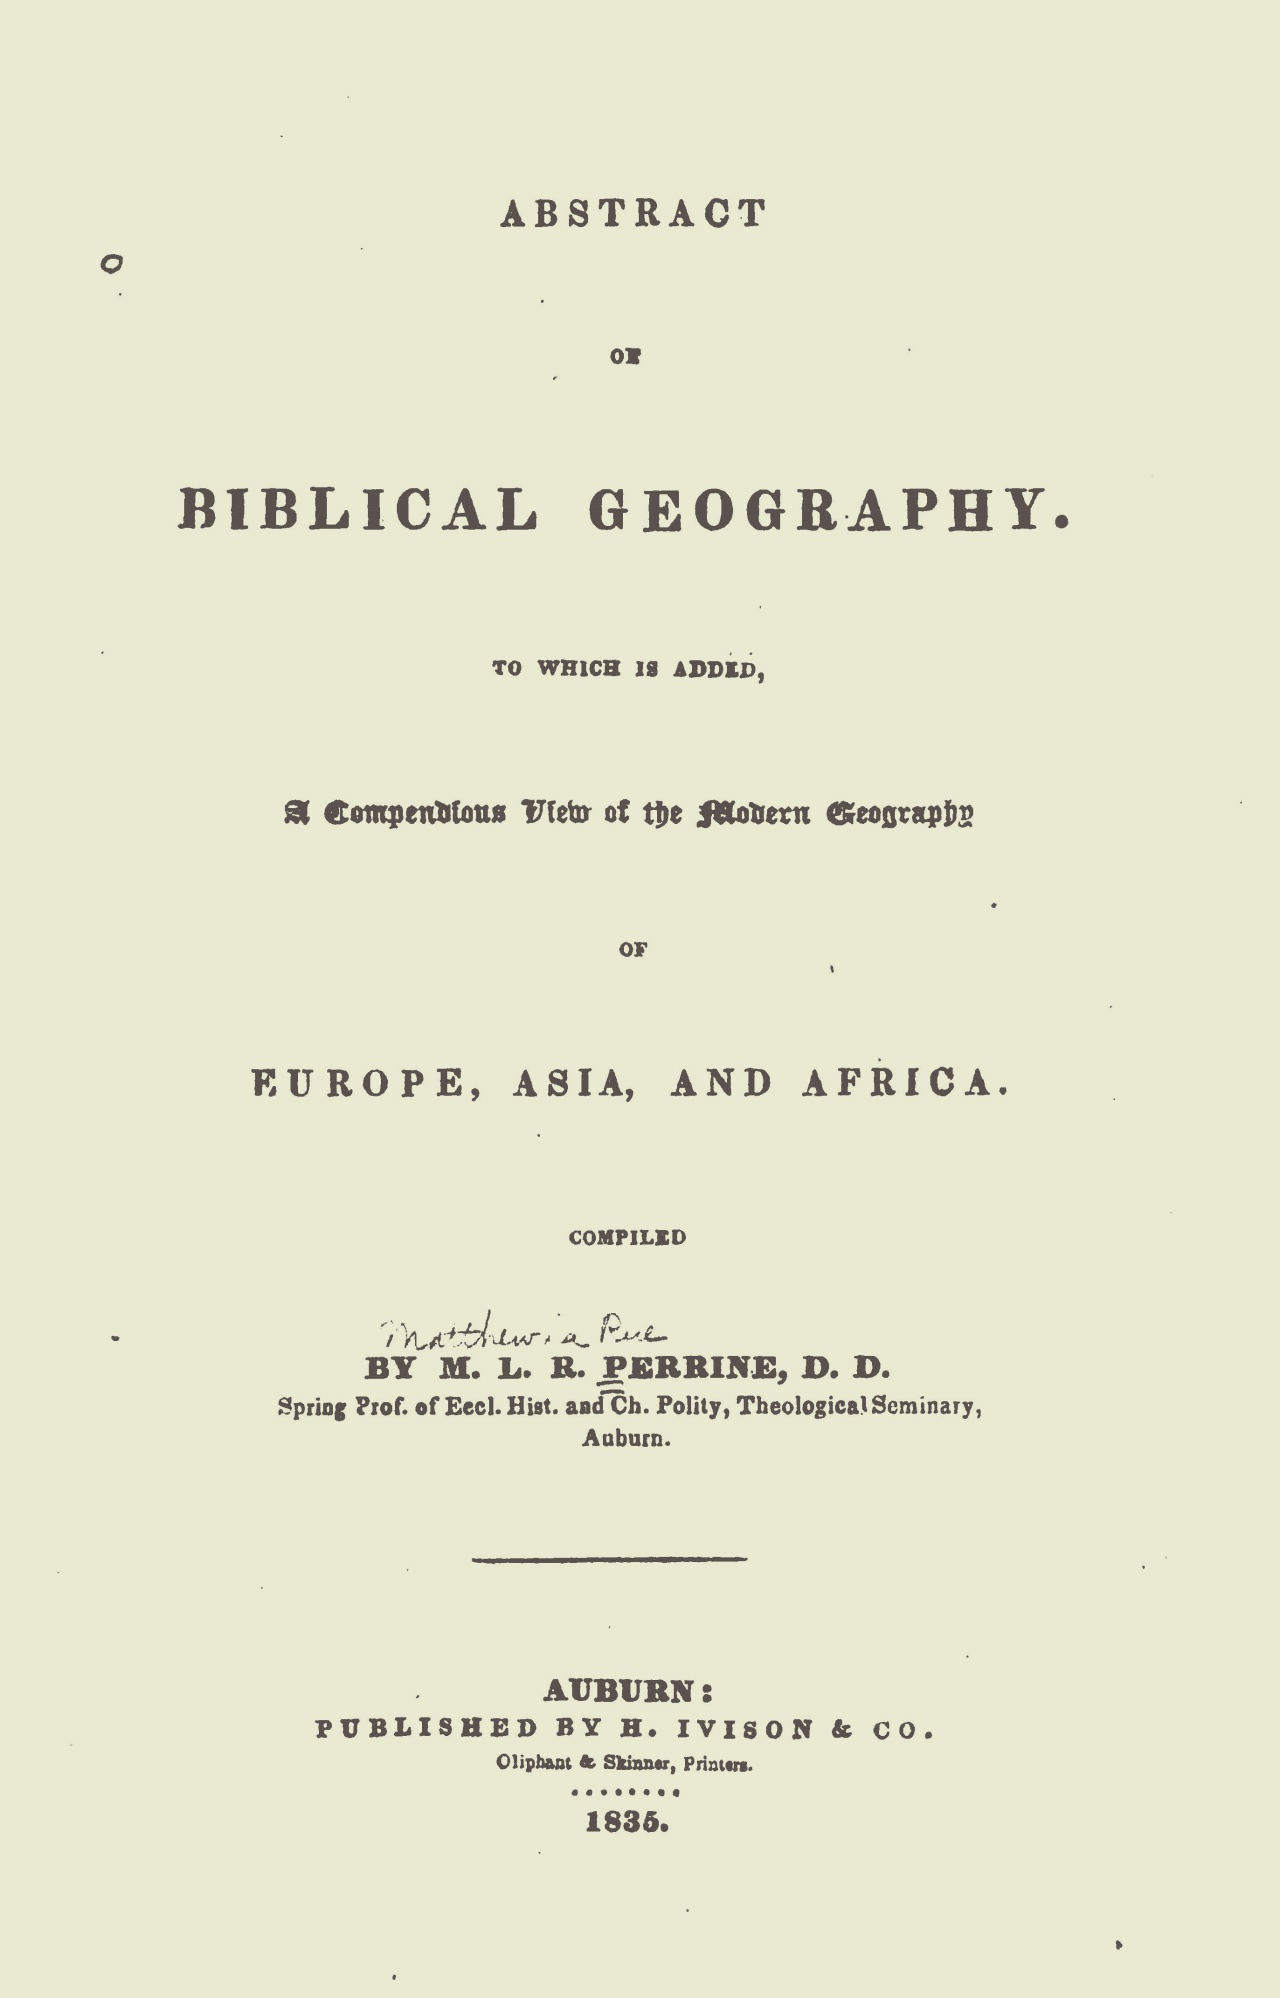 Perrine, Matthew La Rue, Abstract of Biblical Geography Title Page.jpg